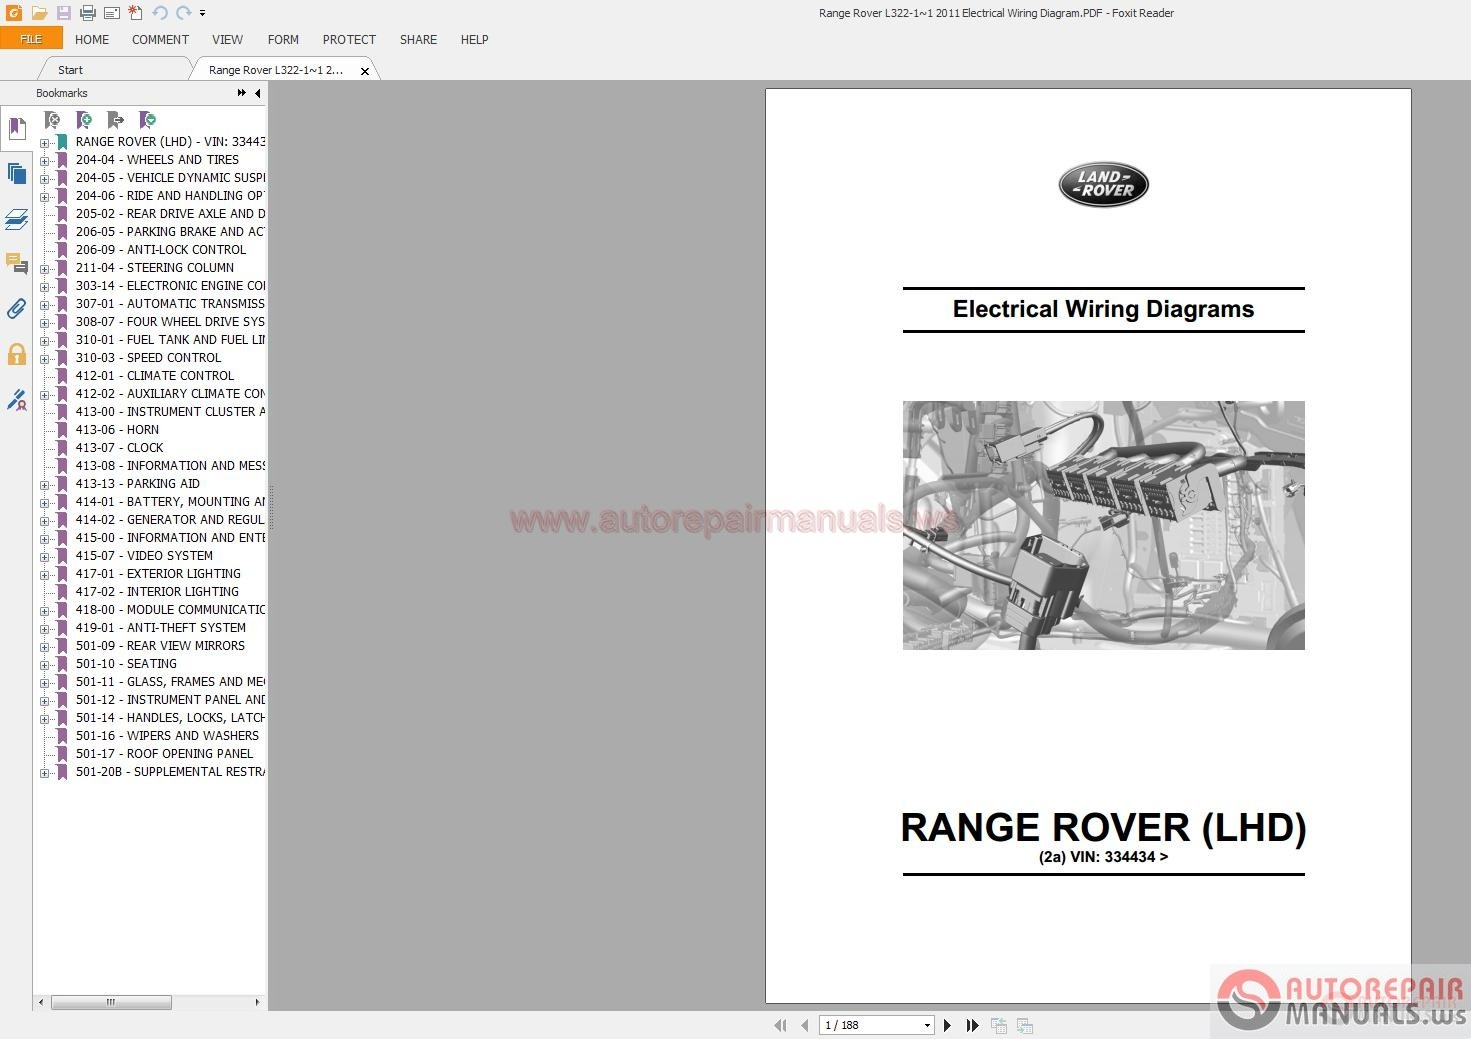 Awesome Range Rover Seat Wiring types of joints chemical draw